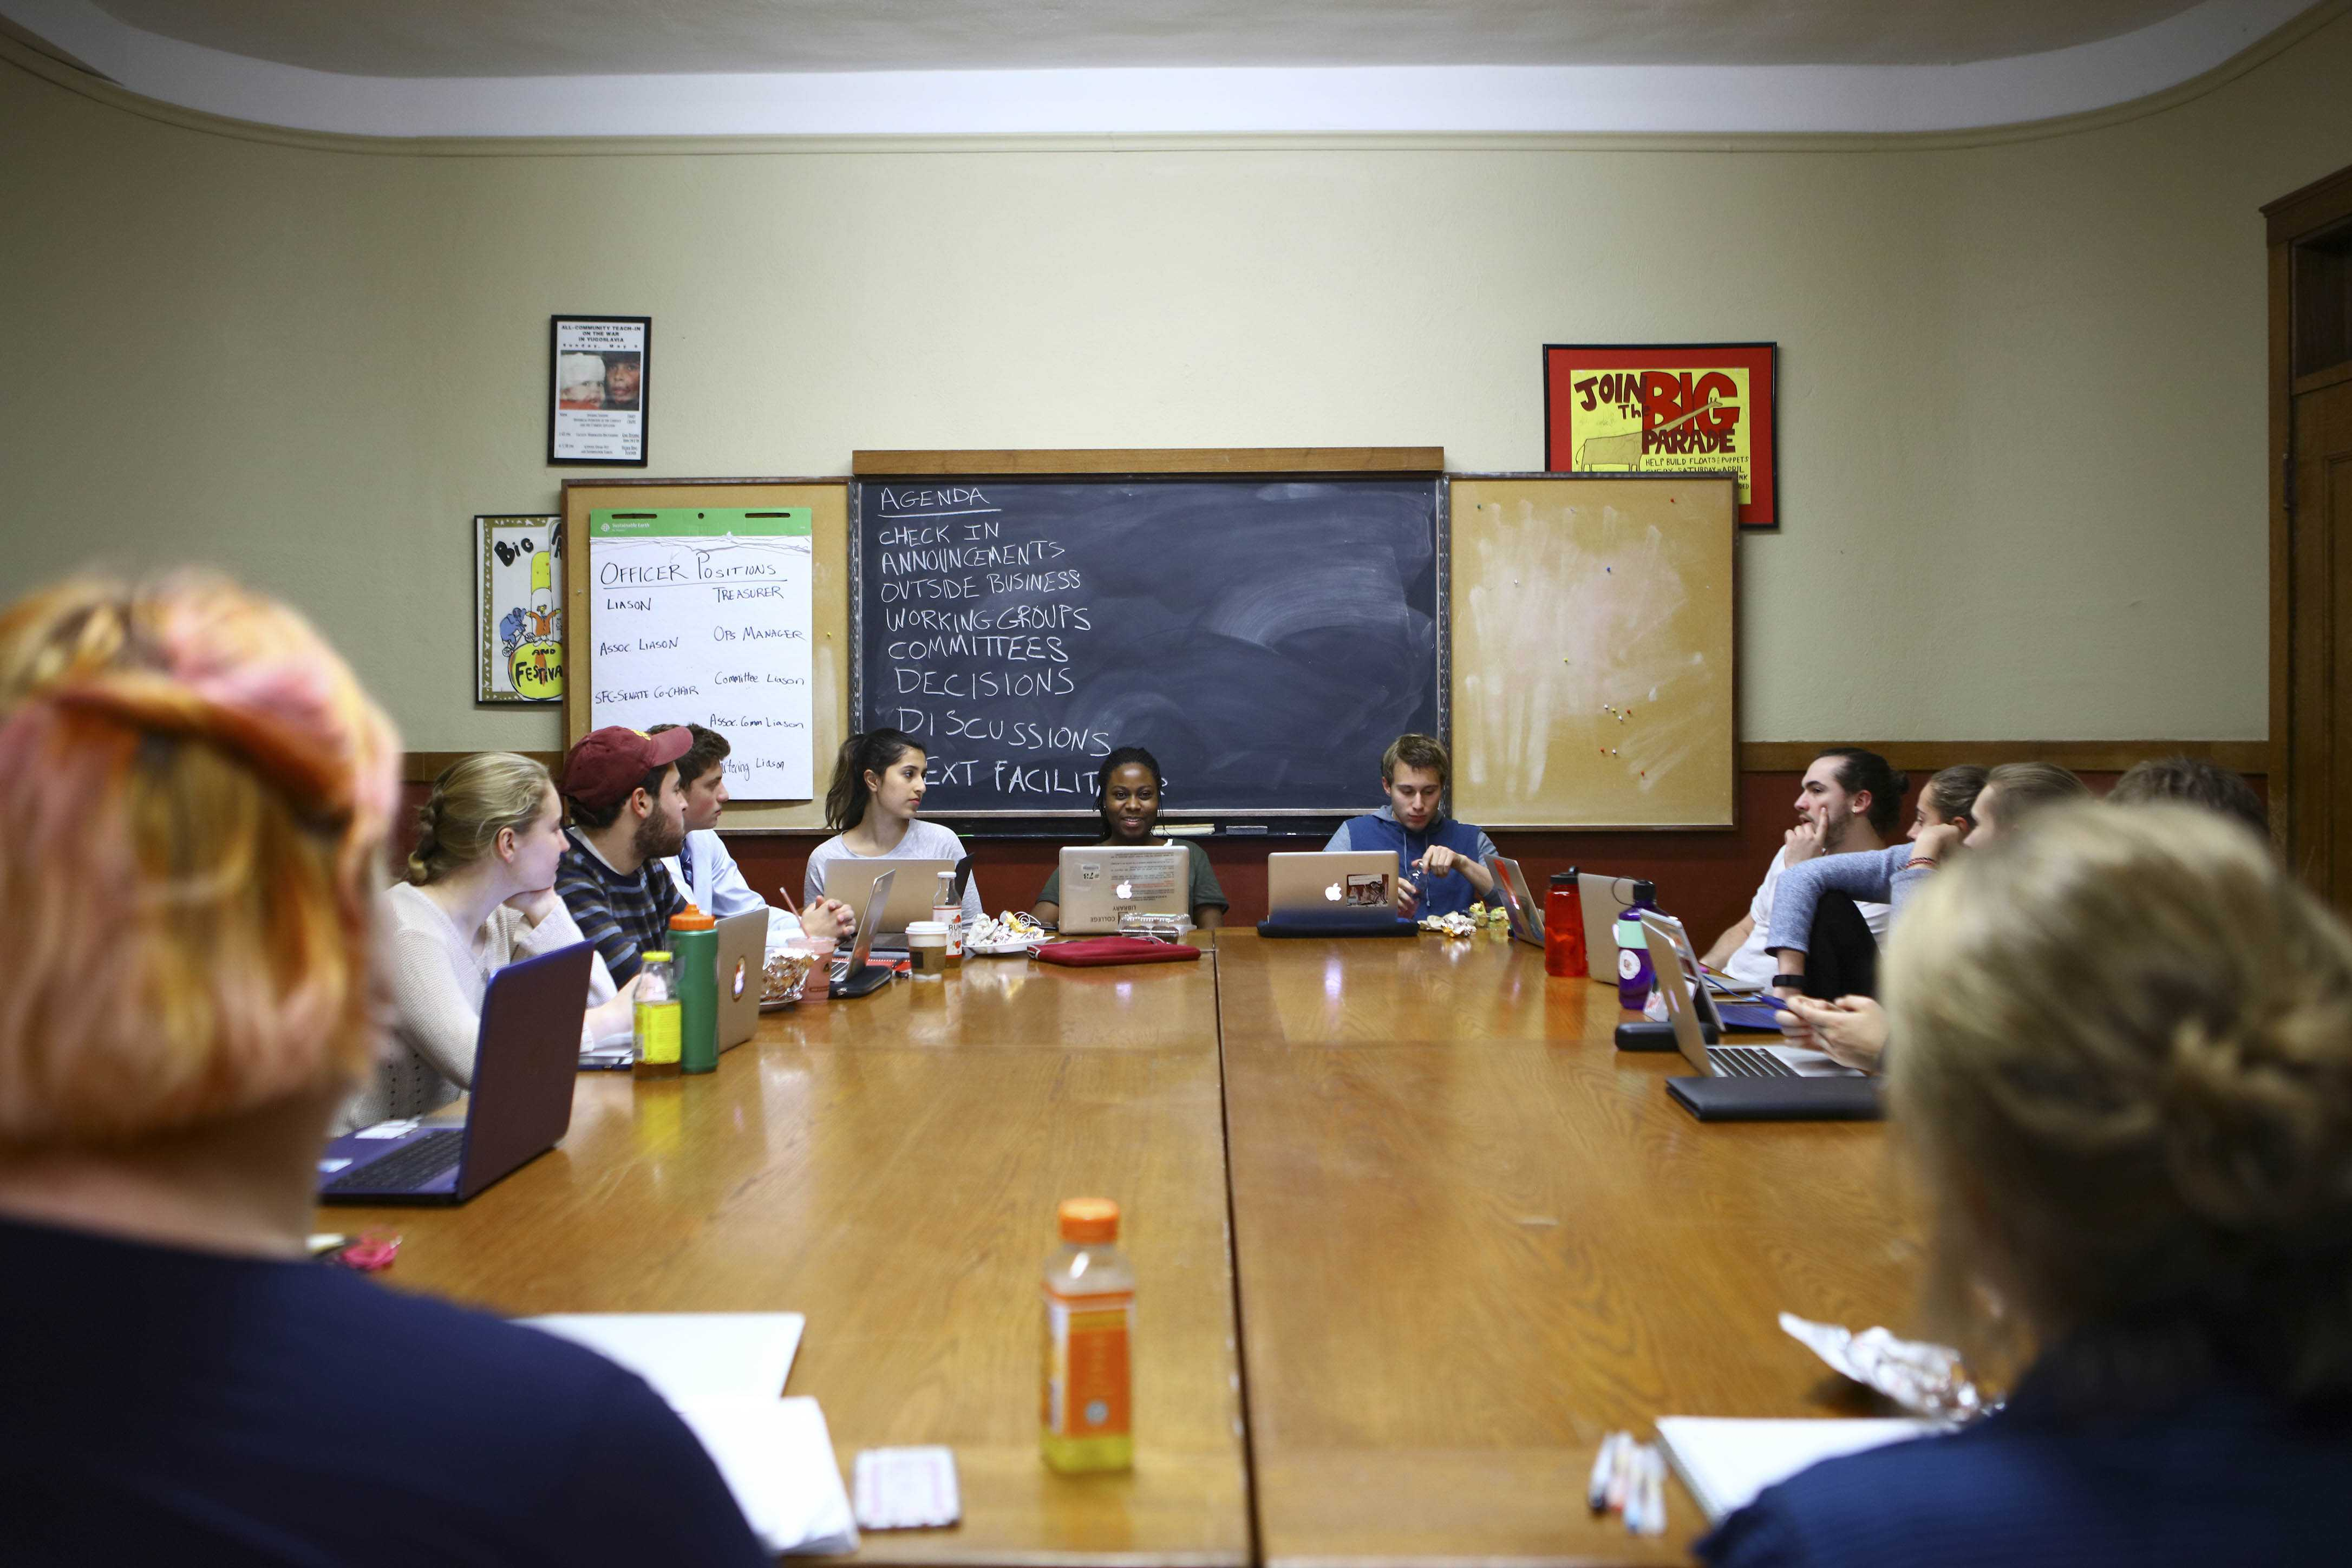 Student Senate met for the first time since elections in Wilder Hall Sunday evening. The new group is introducing a focus on student activism.